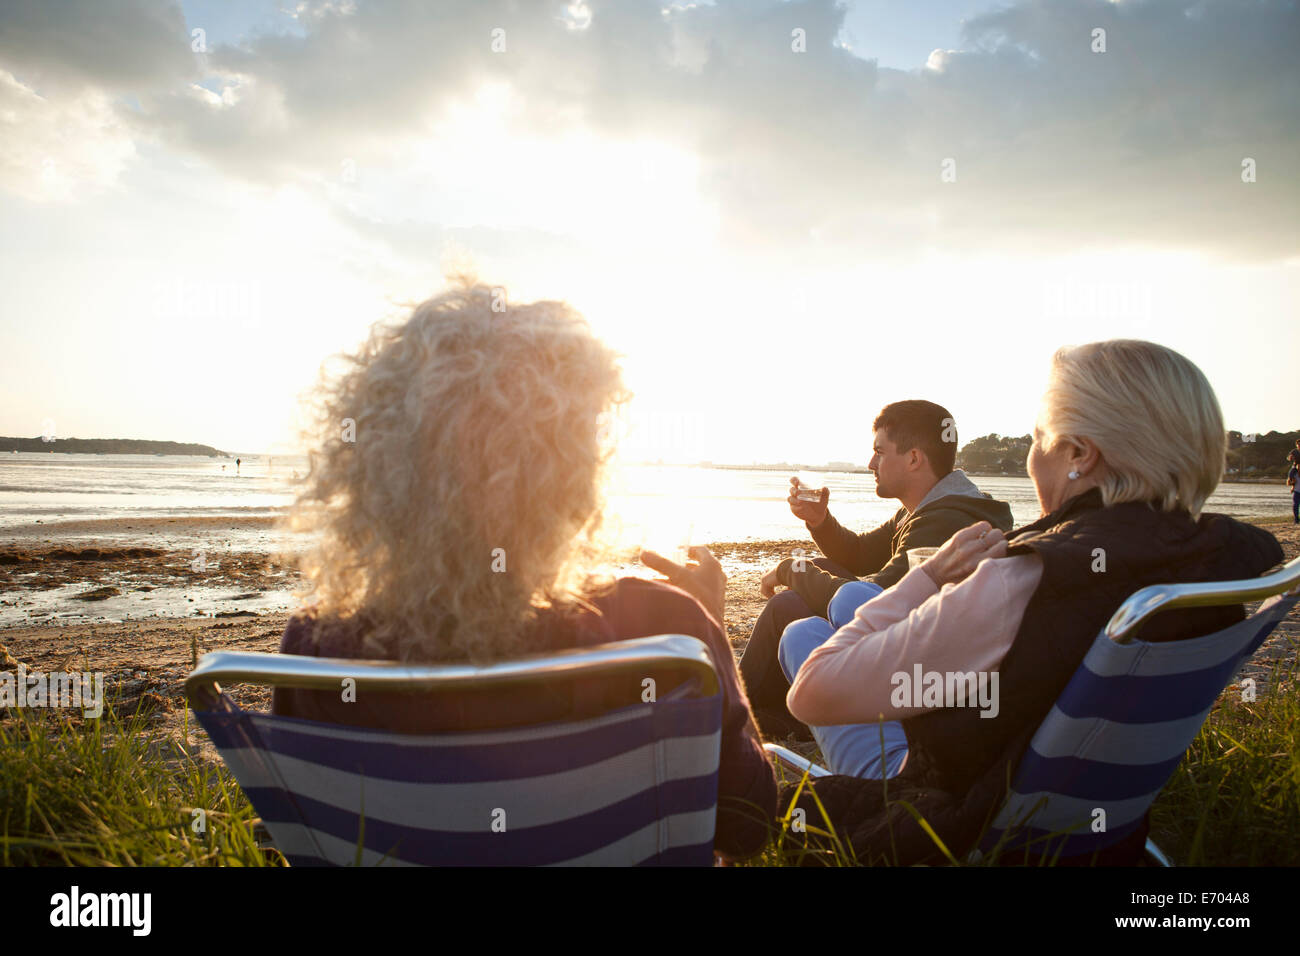 Family members relaxing by beach - Stock Image